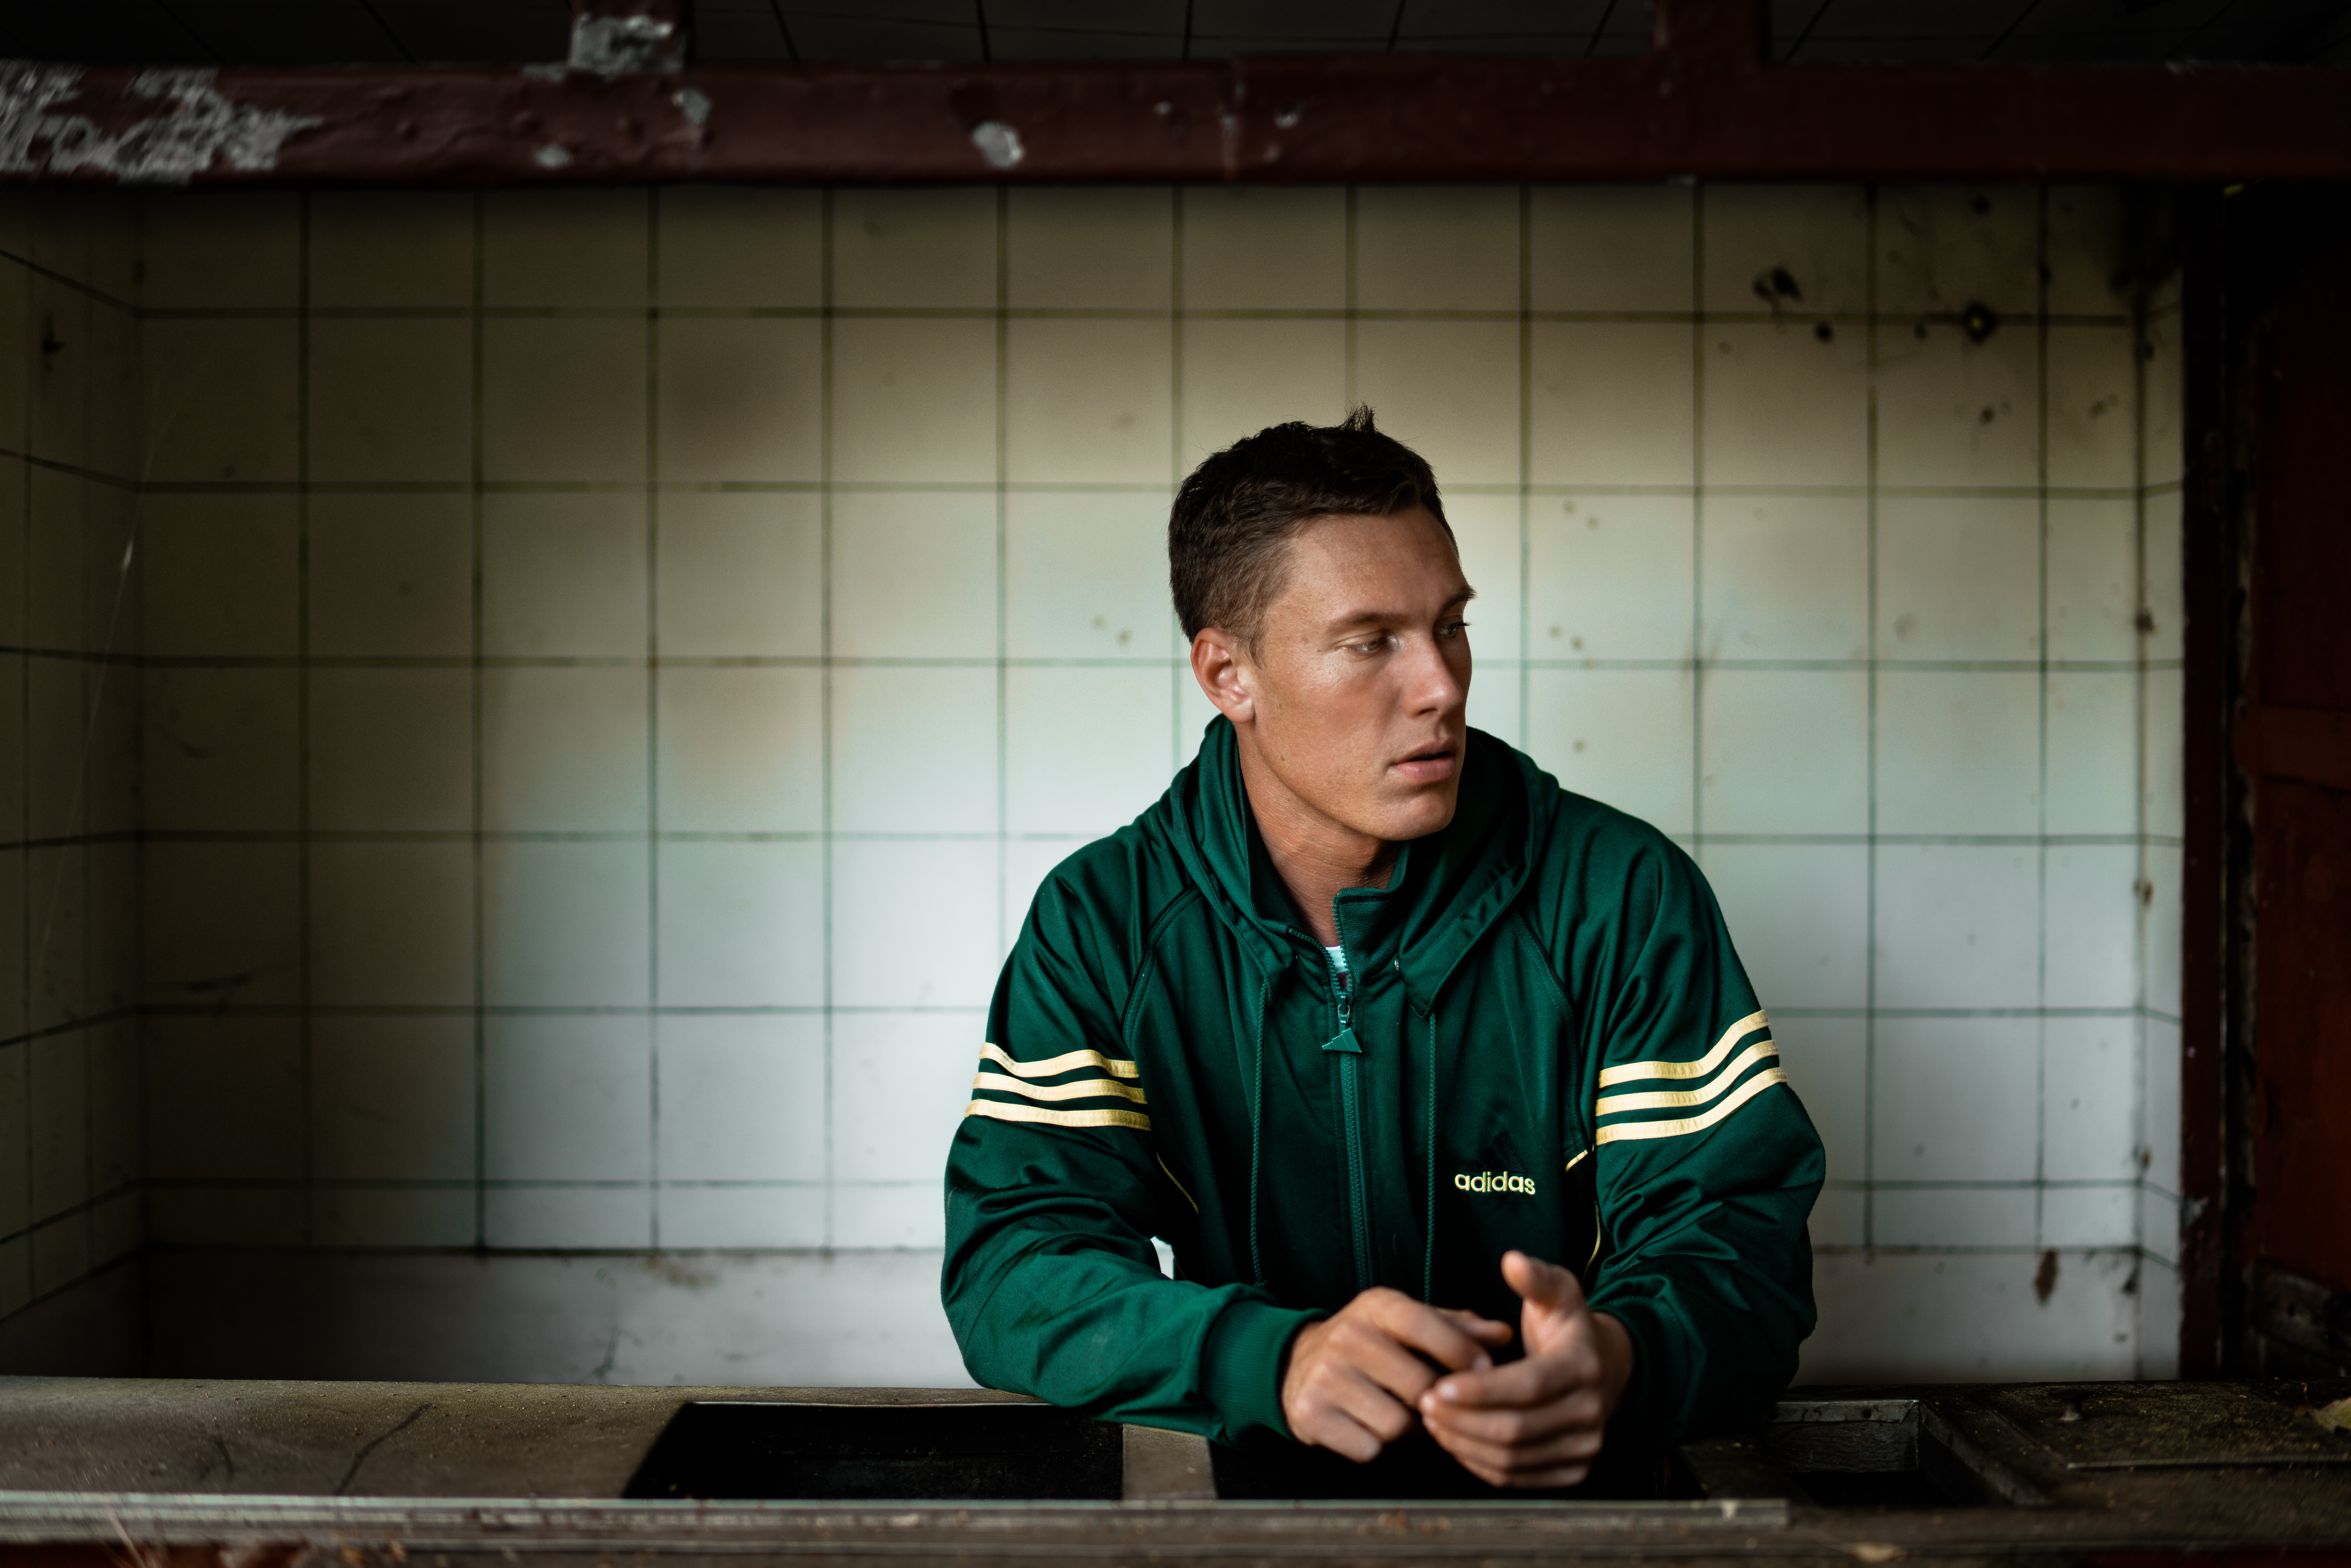 man in green zip-up jacket leaning on countertop